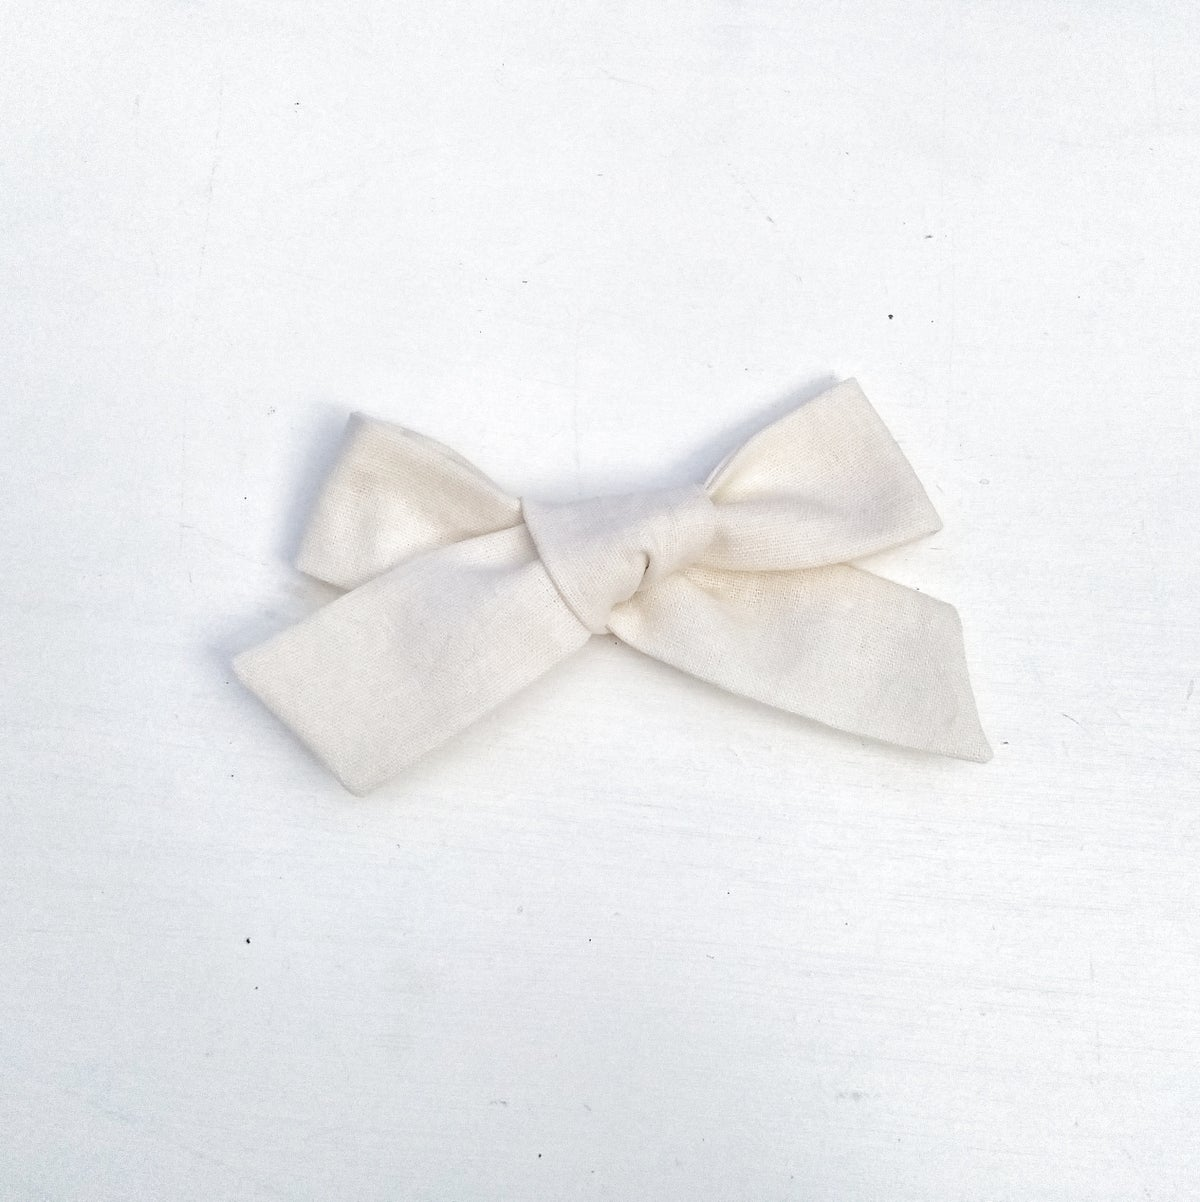 Image of Over Sized Hand Tied Hair Bow - Cream Linen Fabric